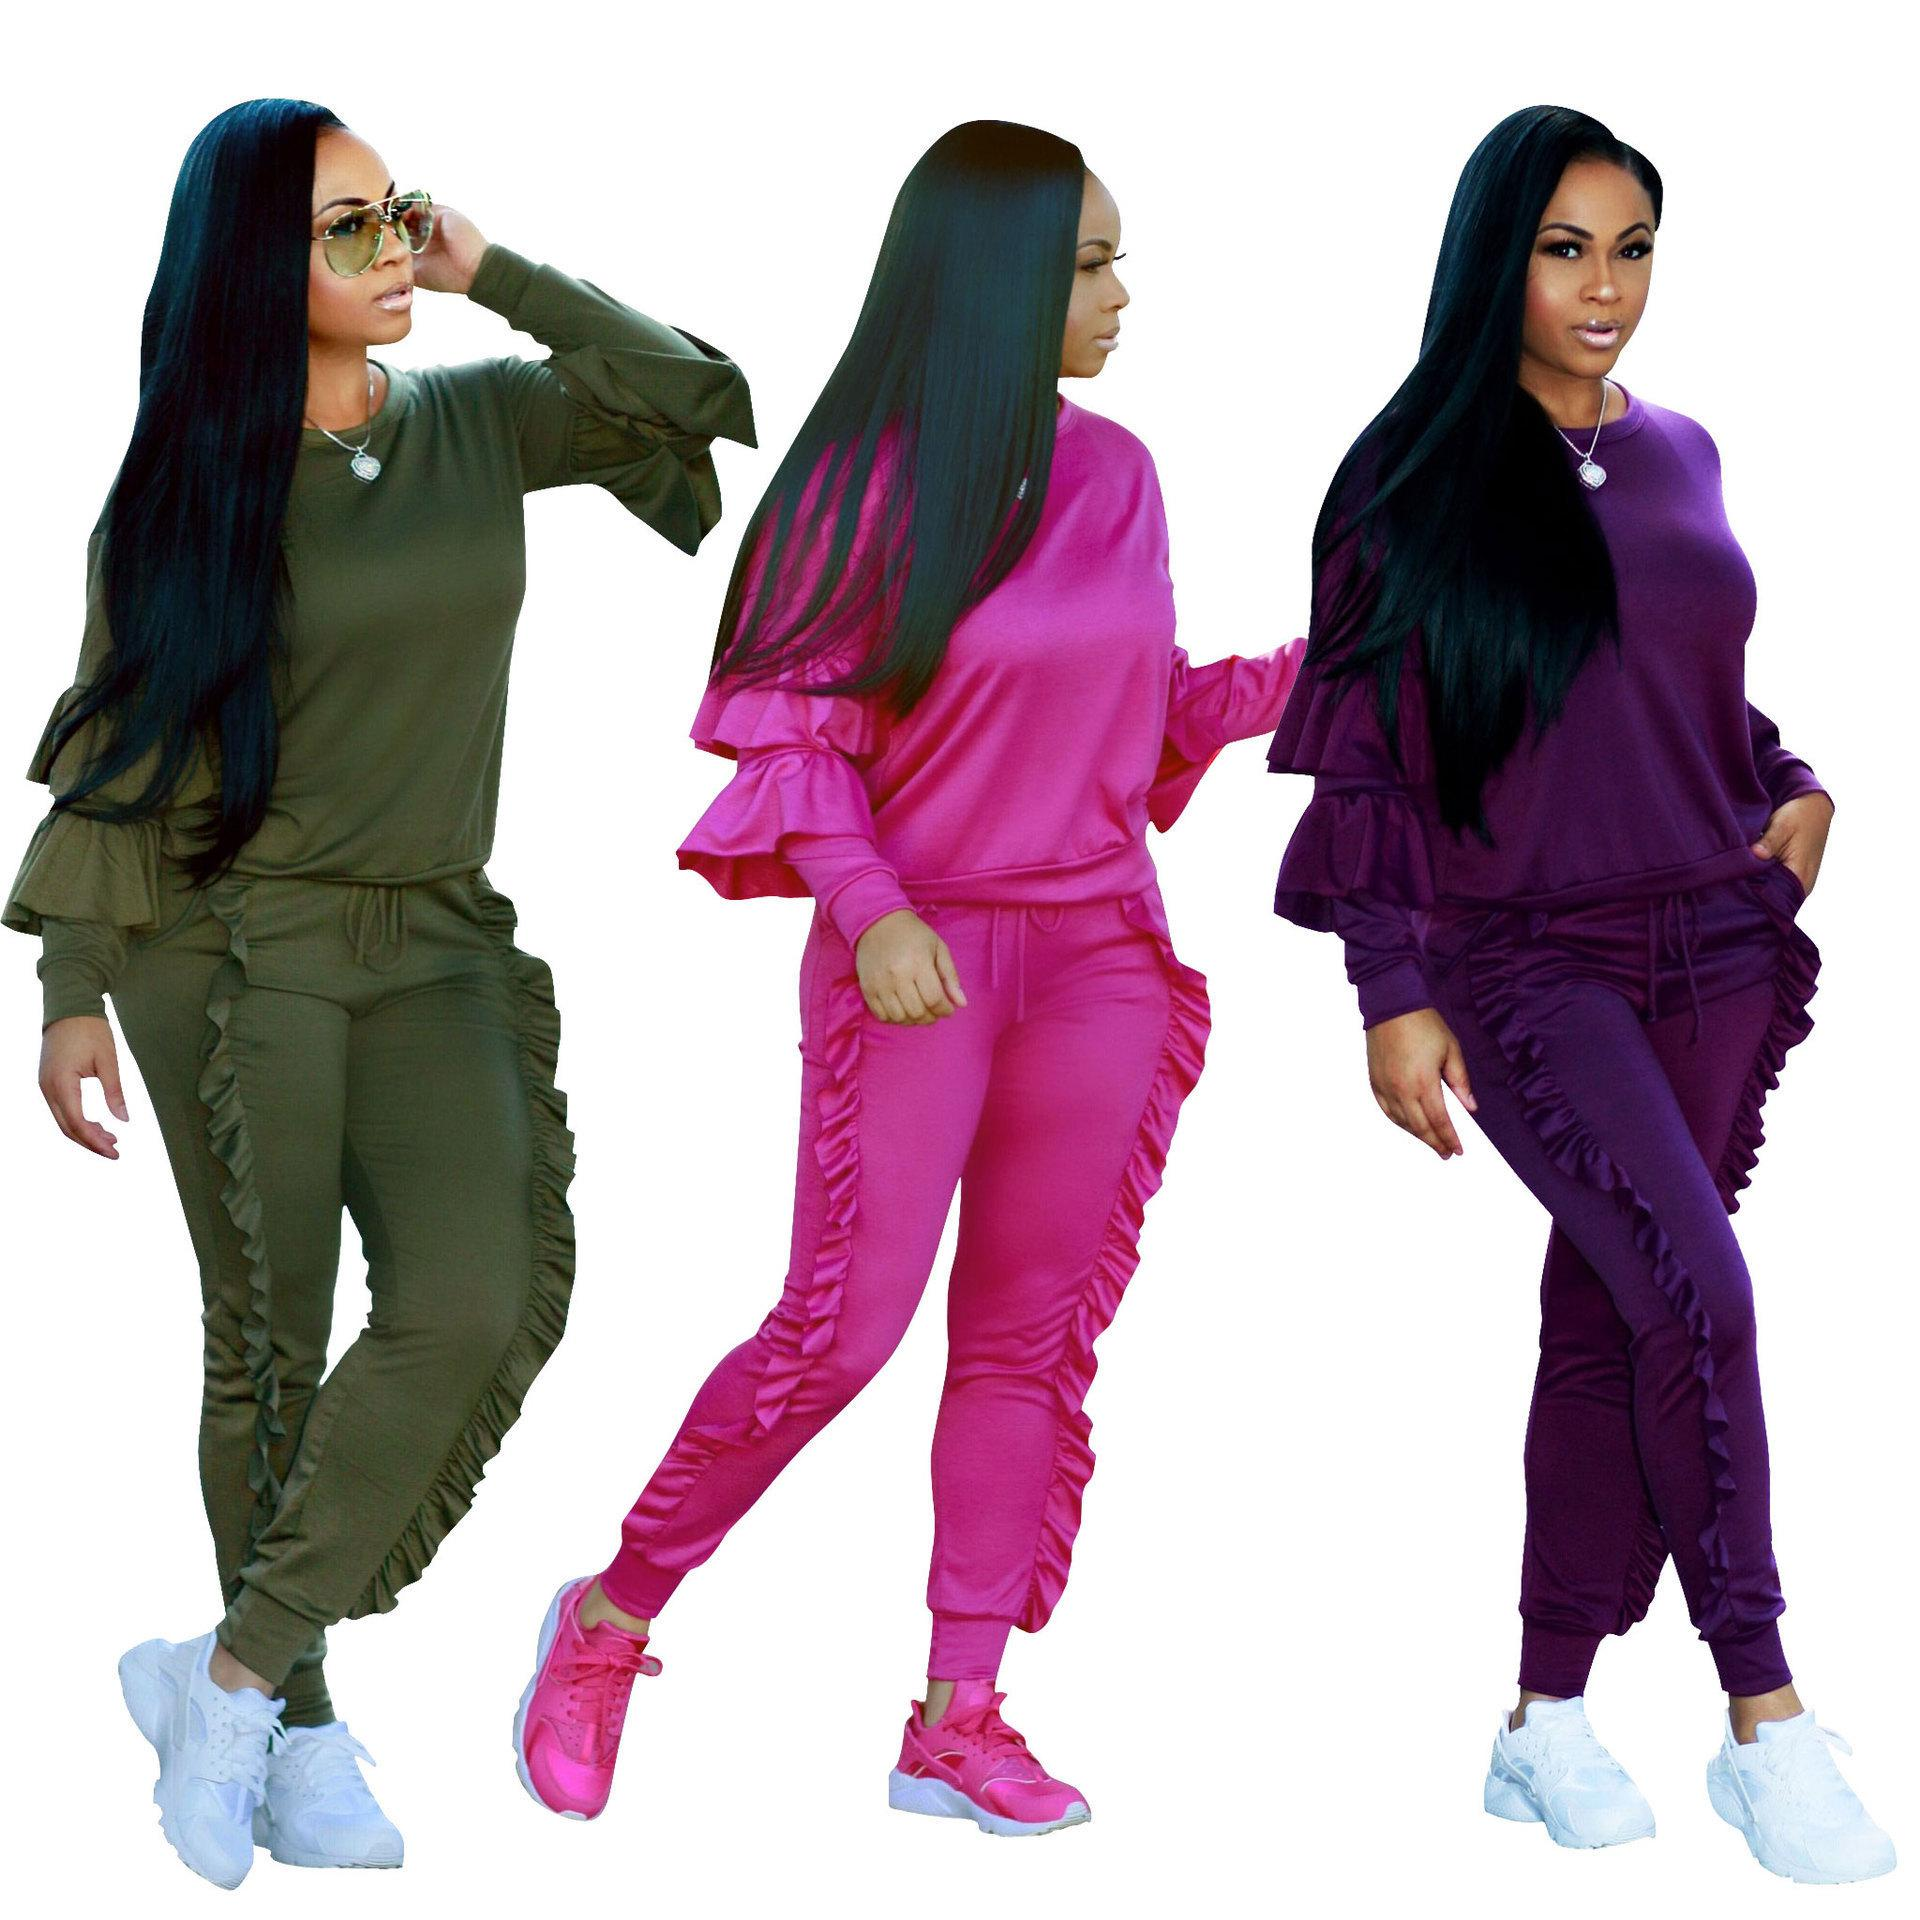 Women Tracksuits Two Pieces Set Solid Colour Long Sleeves And Pants Laces Ladies New Fashion Autumn And Winter Sportwear Eight Colors 2020